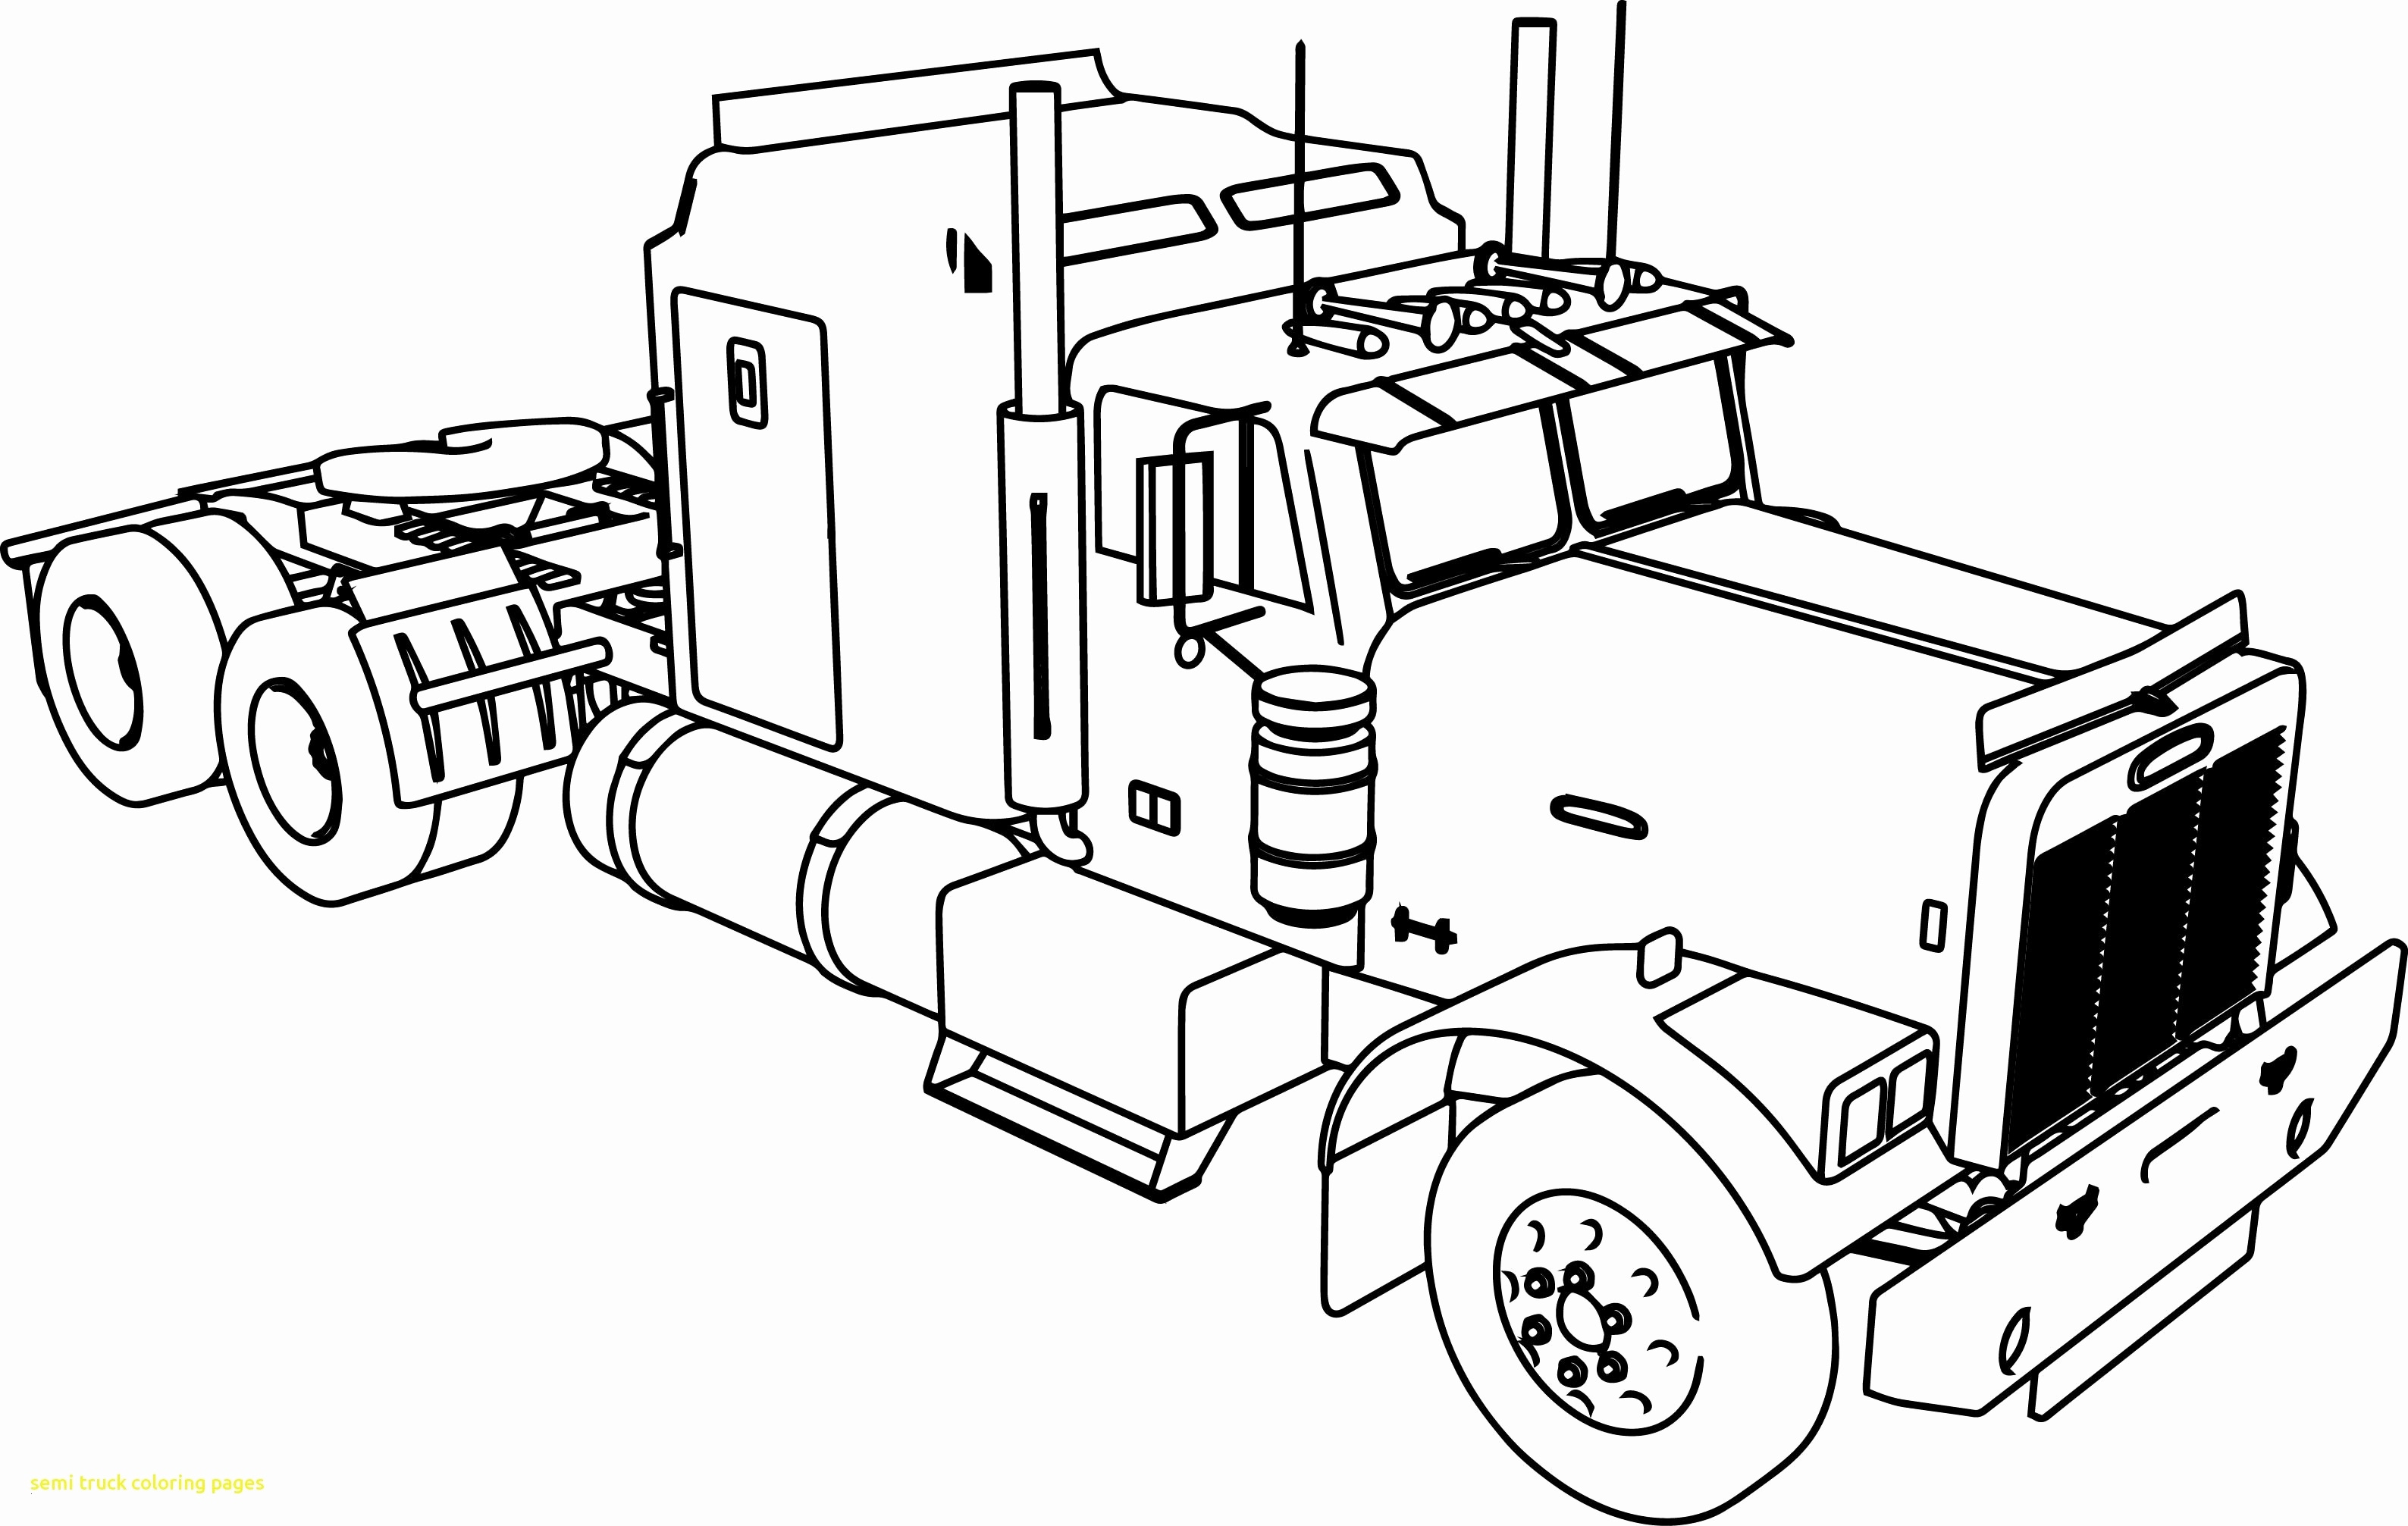 Tractor Trailer Coloring Pages  Download 6n - Free For kids